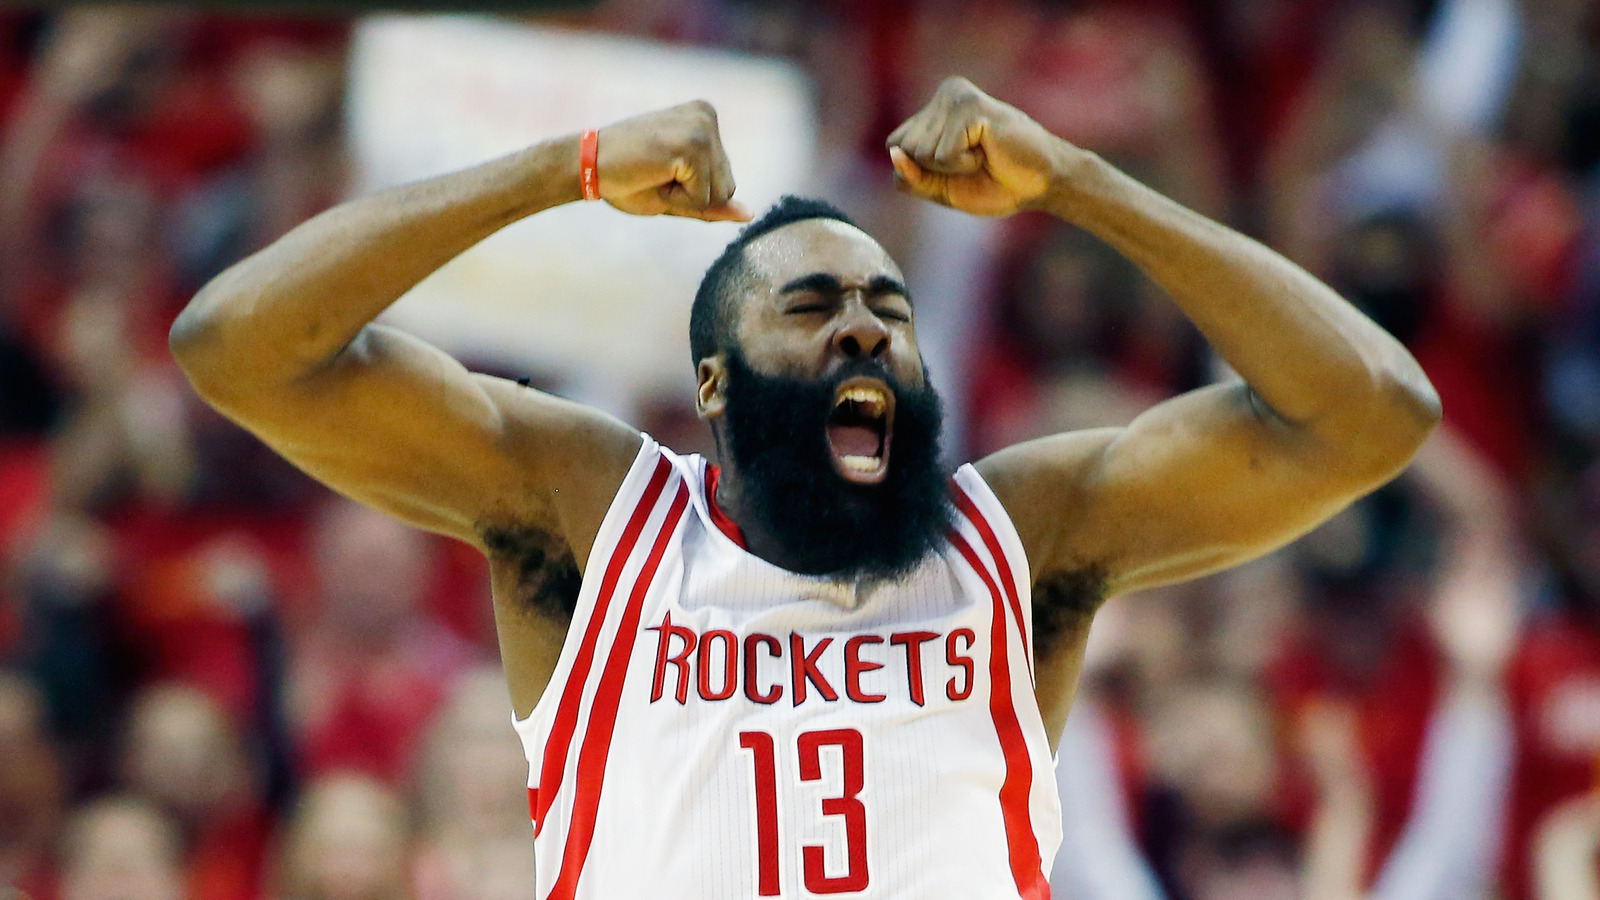 ddb5b5e4709 Thunder may have traded James Harden in part because of his partying ...